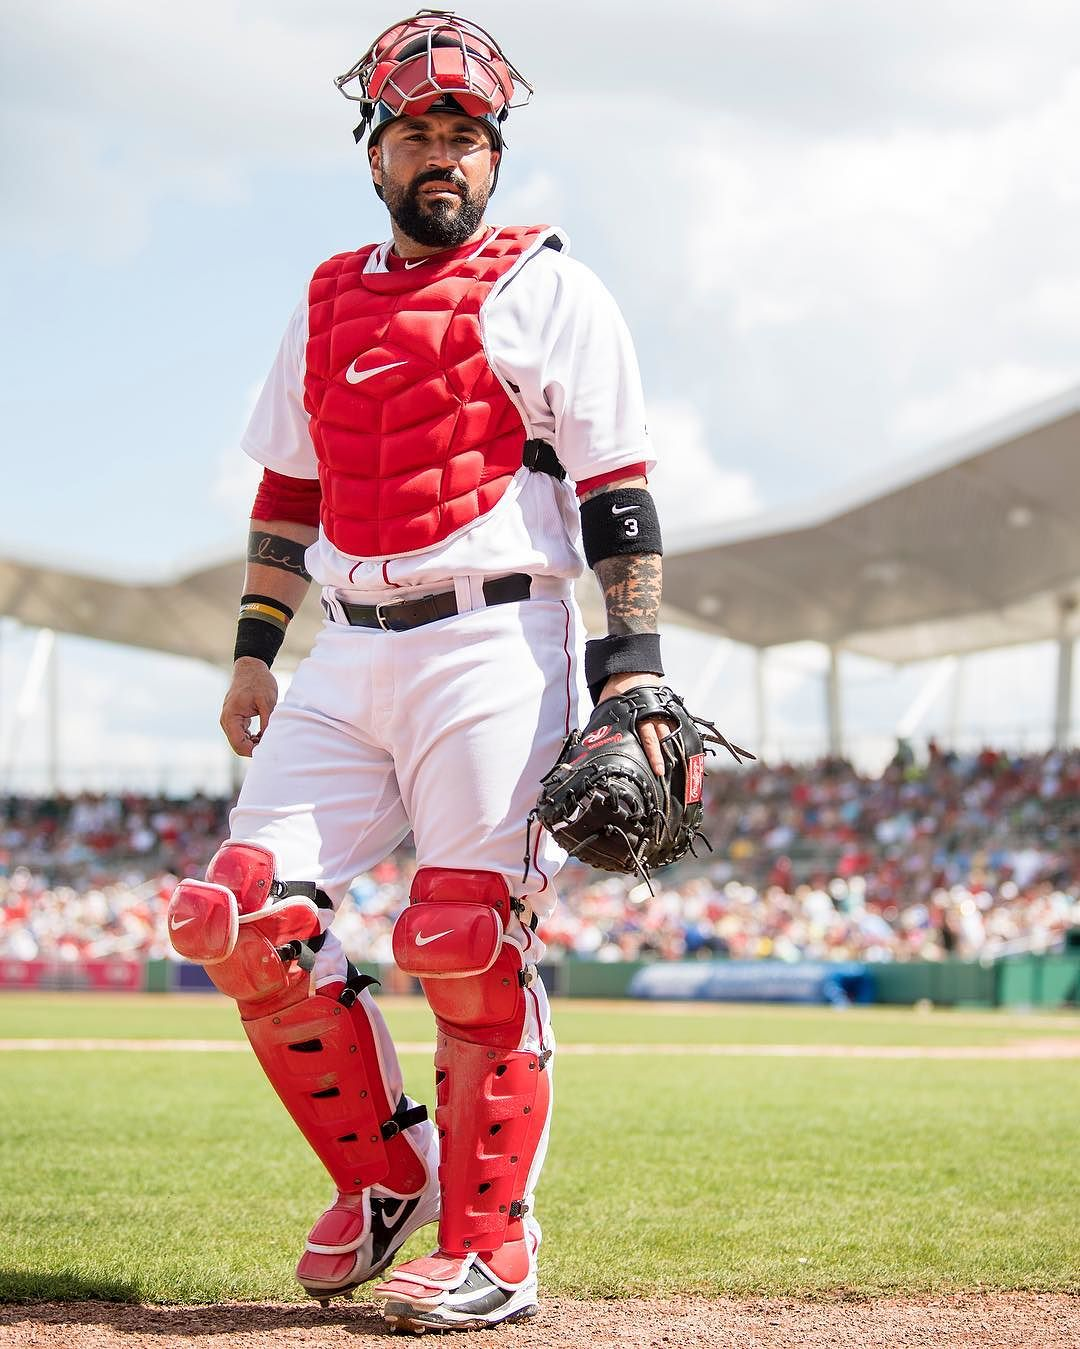 Sandy Leon and Blake Swihart Combined to Hit Three Home Runs for the #RedSox Today.